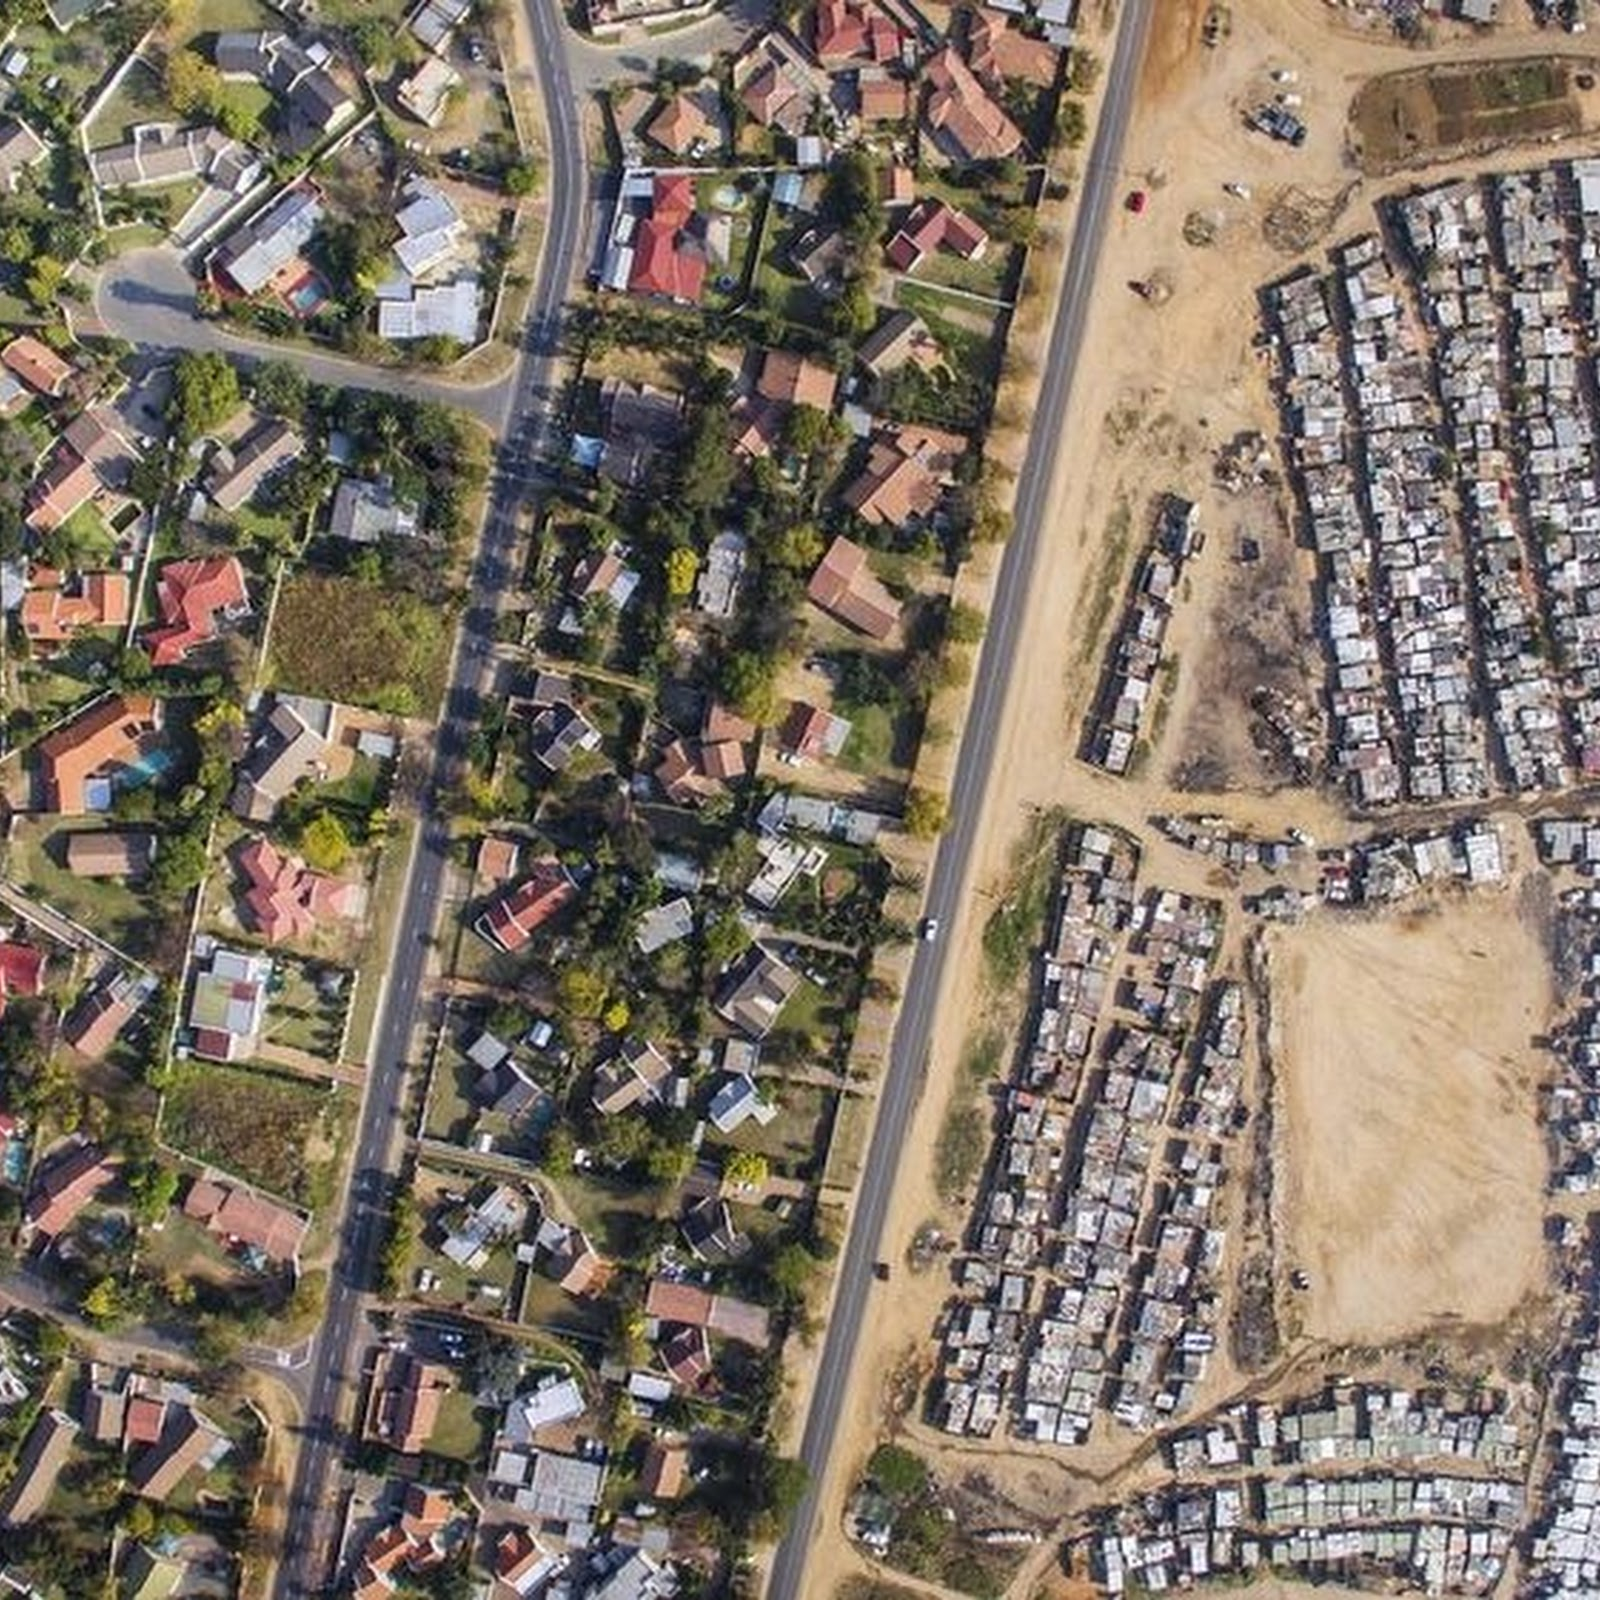 Drone Photos Capture The Rich/Poor Divide in Cape Town